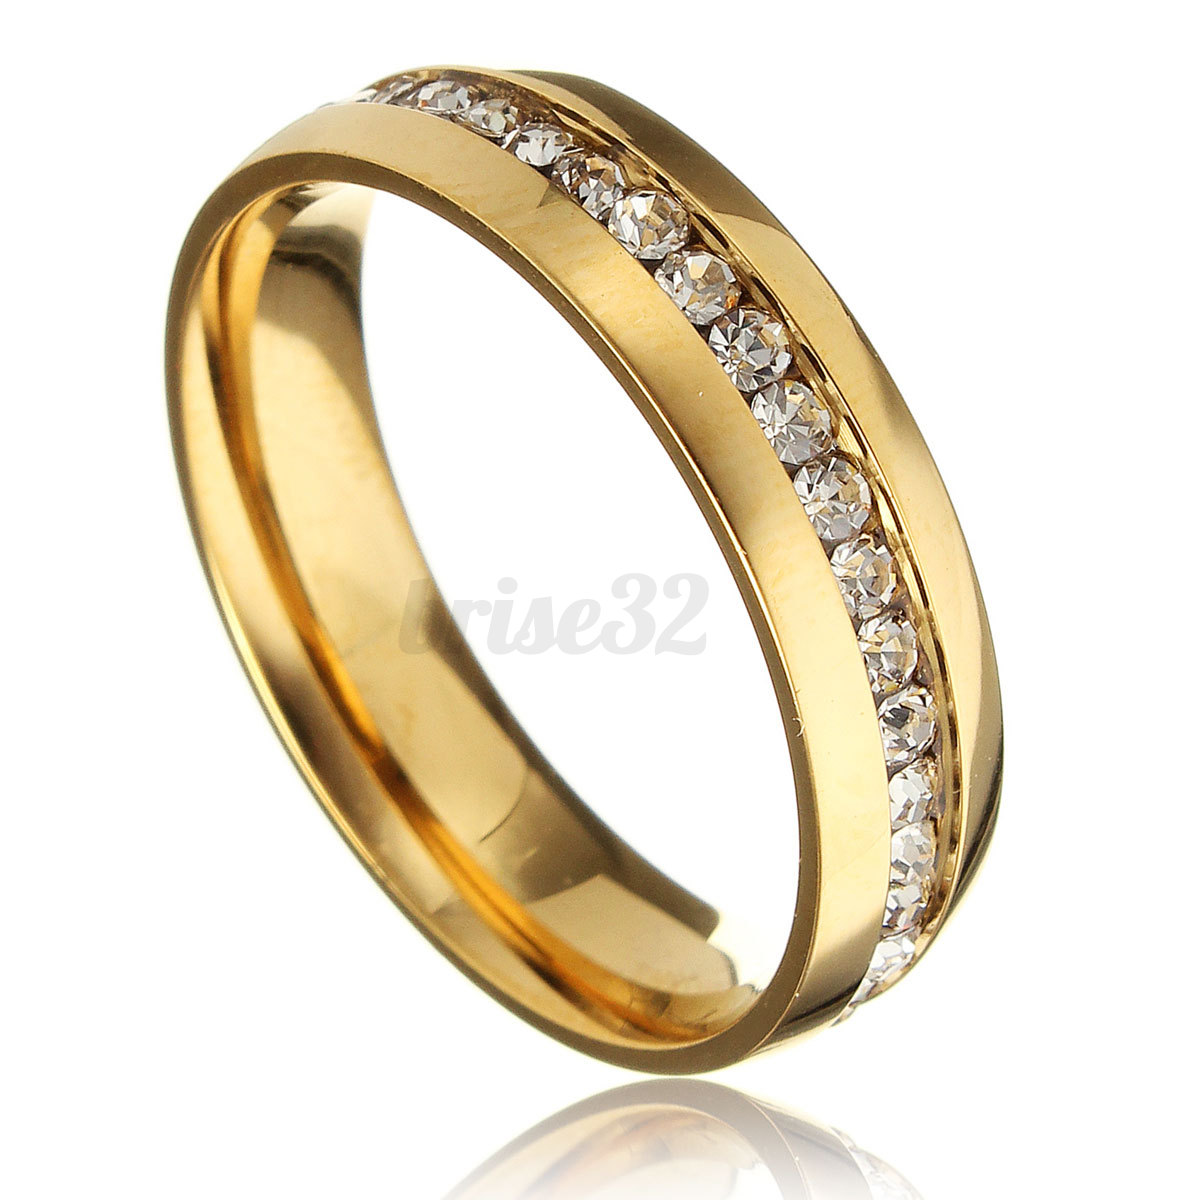 Gold Plated Wedding Rings: New 18k Gold Plated CZ Round Band Ring Women/Men's